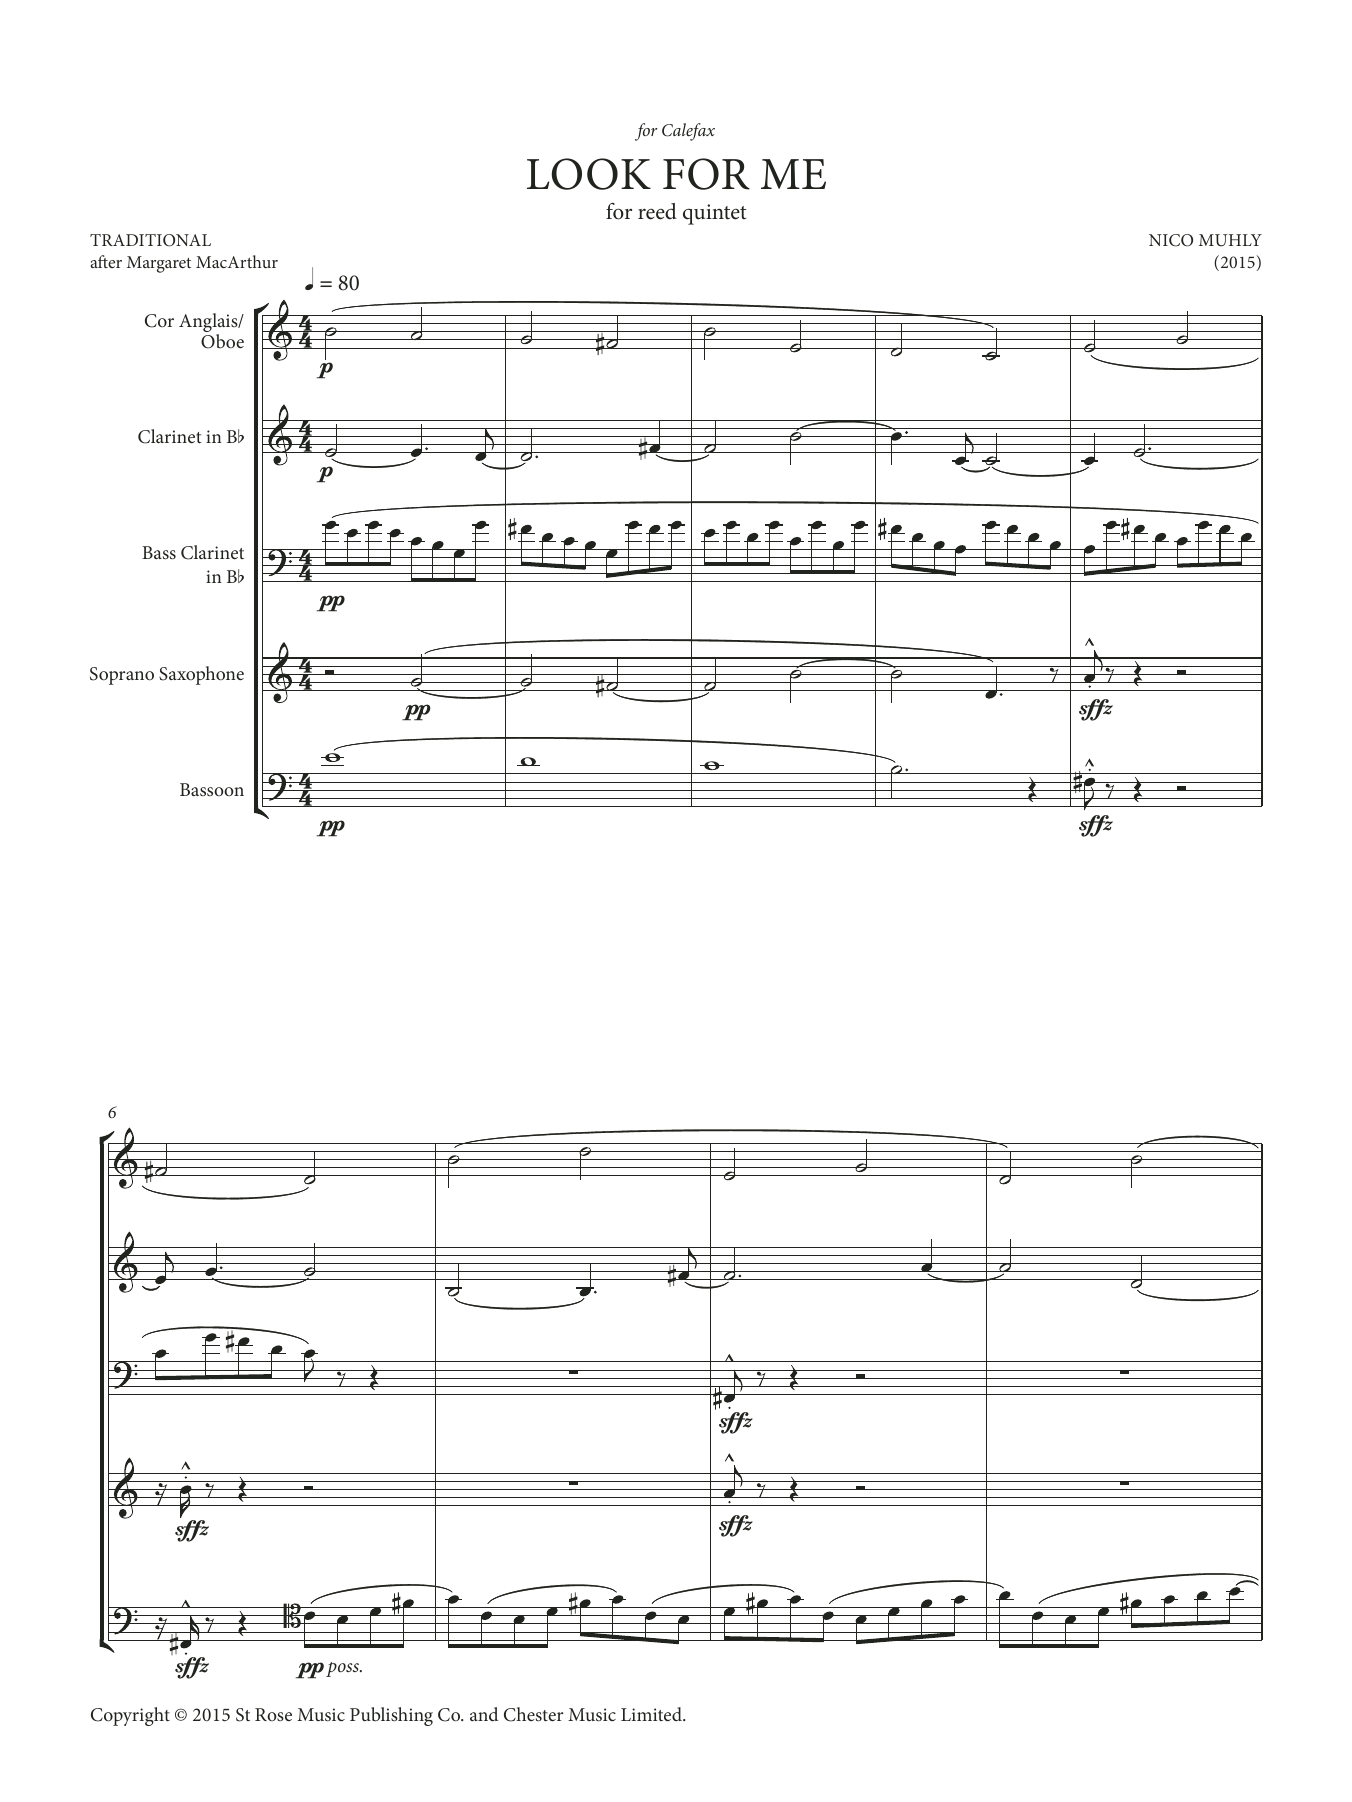 Look For Me (for reed quintet) Sheet Music